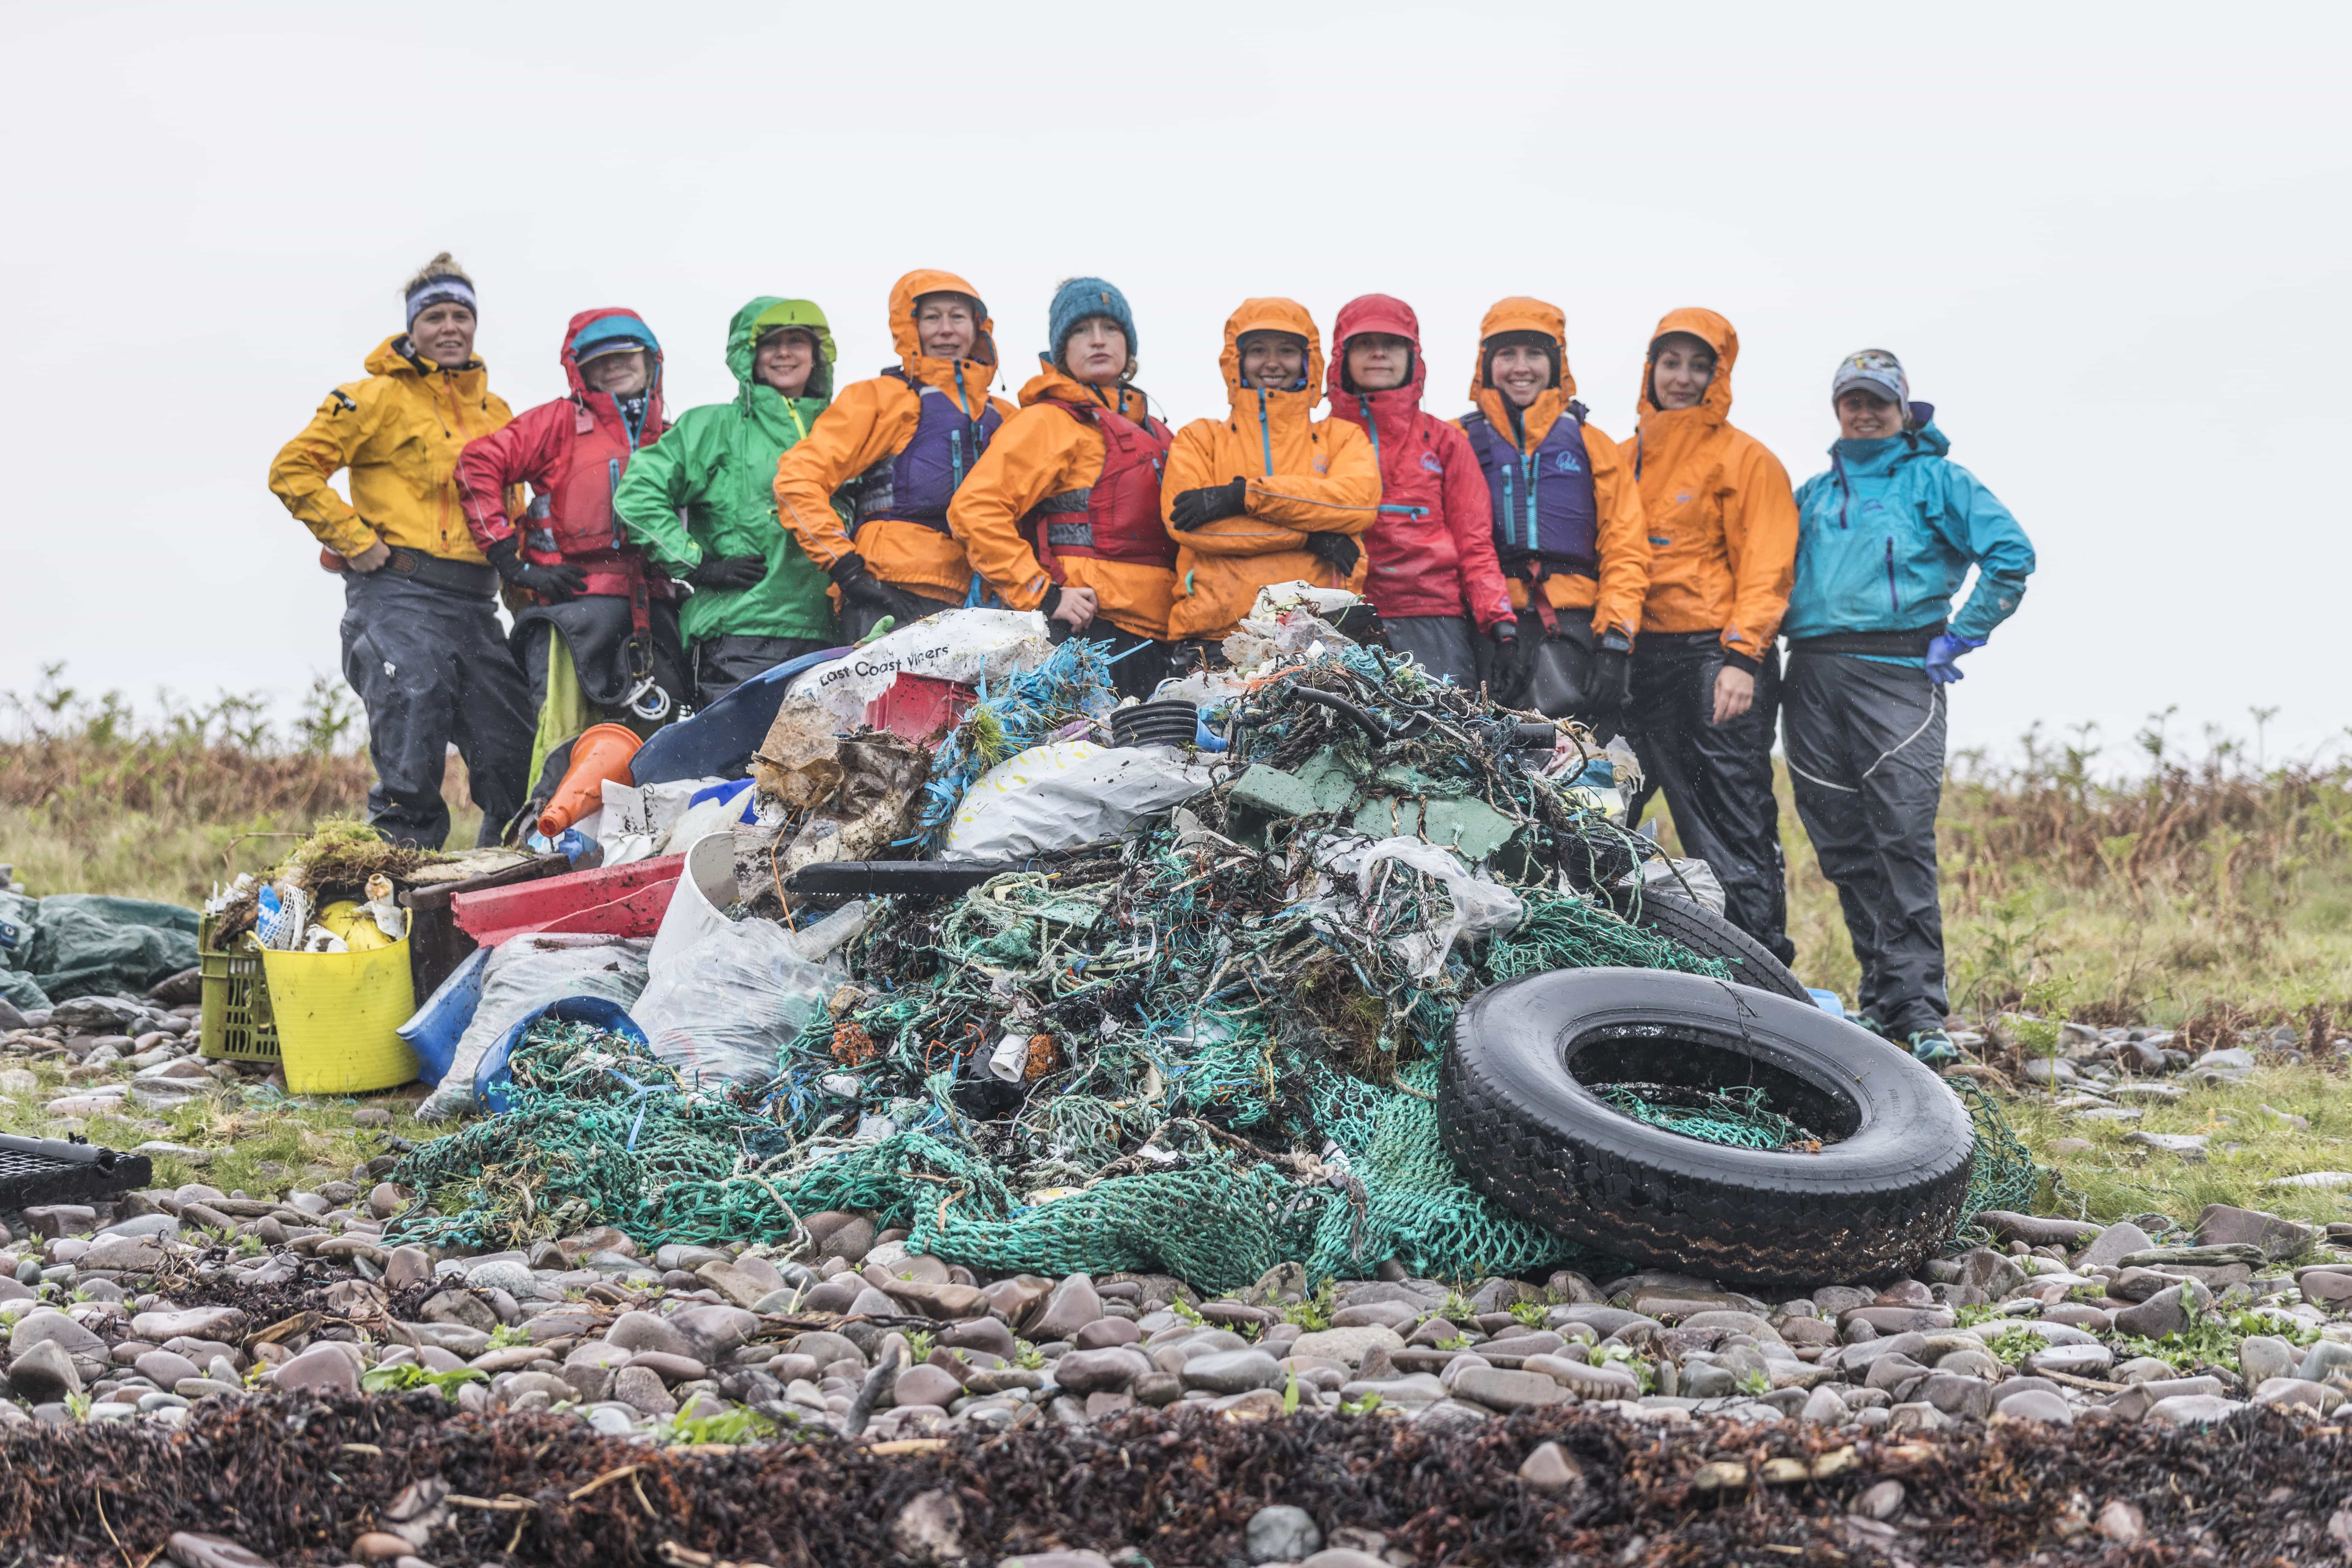 Paddle Cleanup